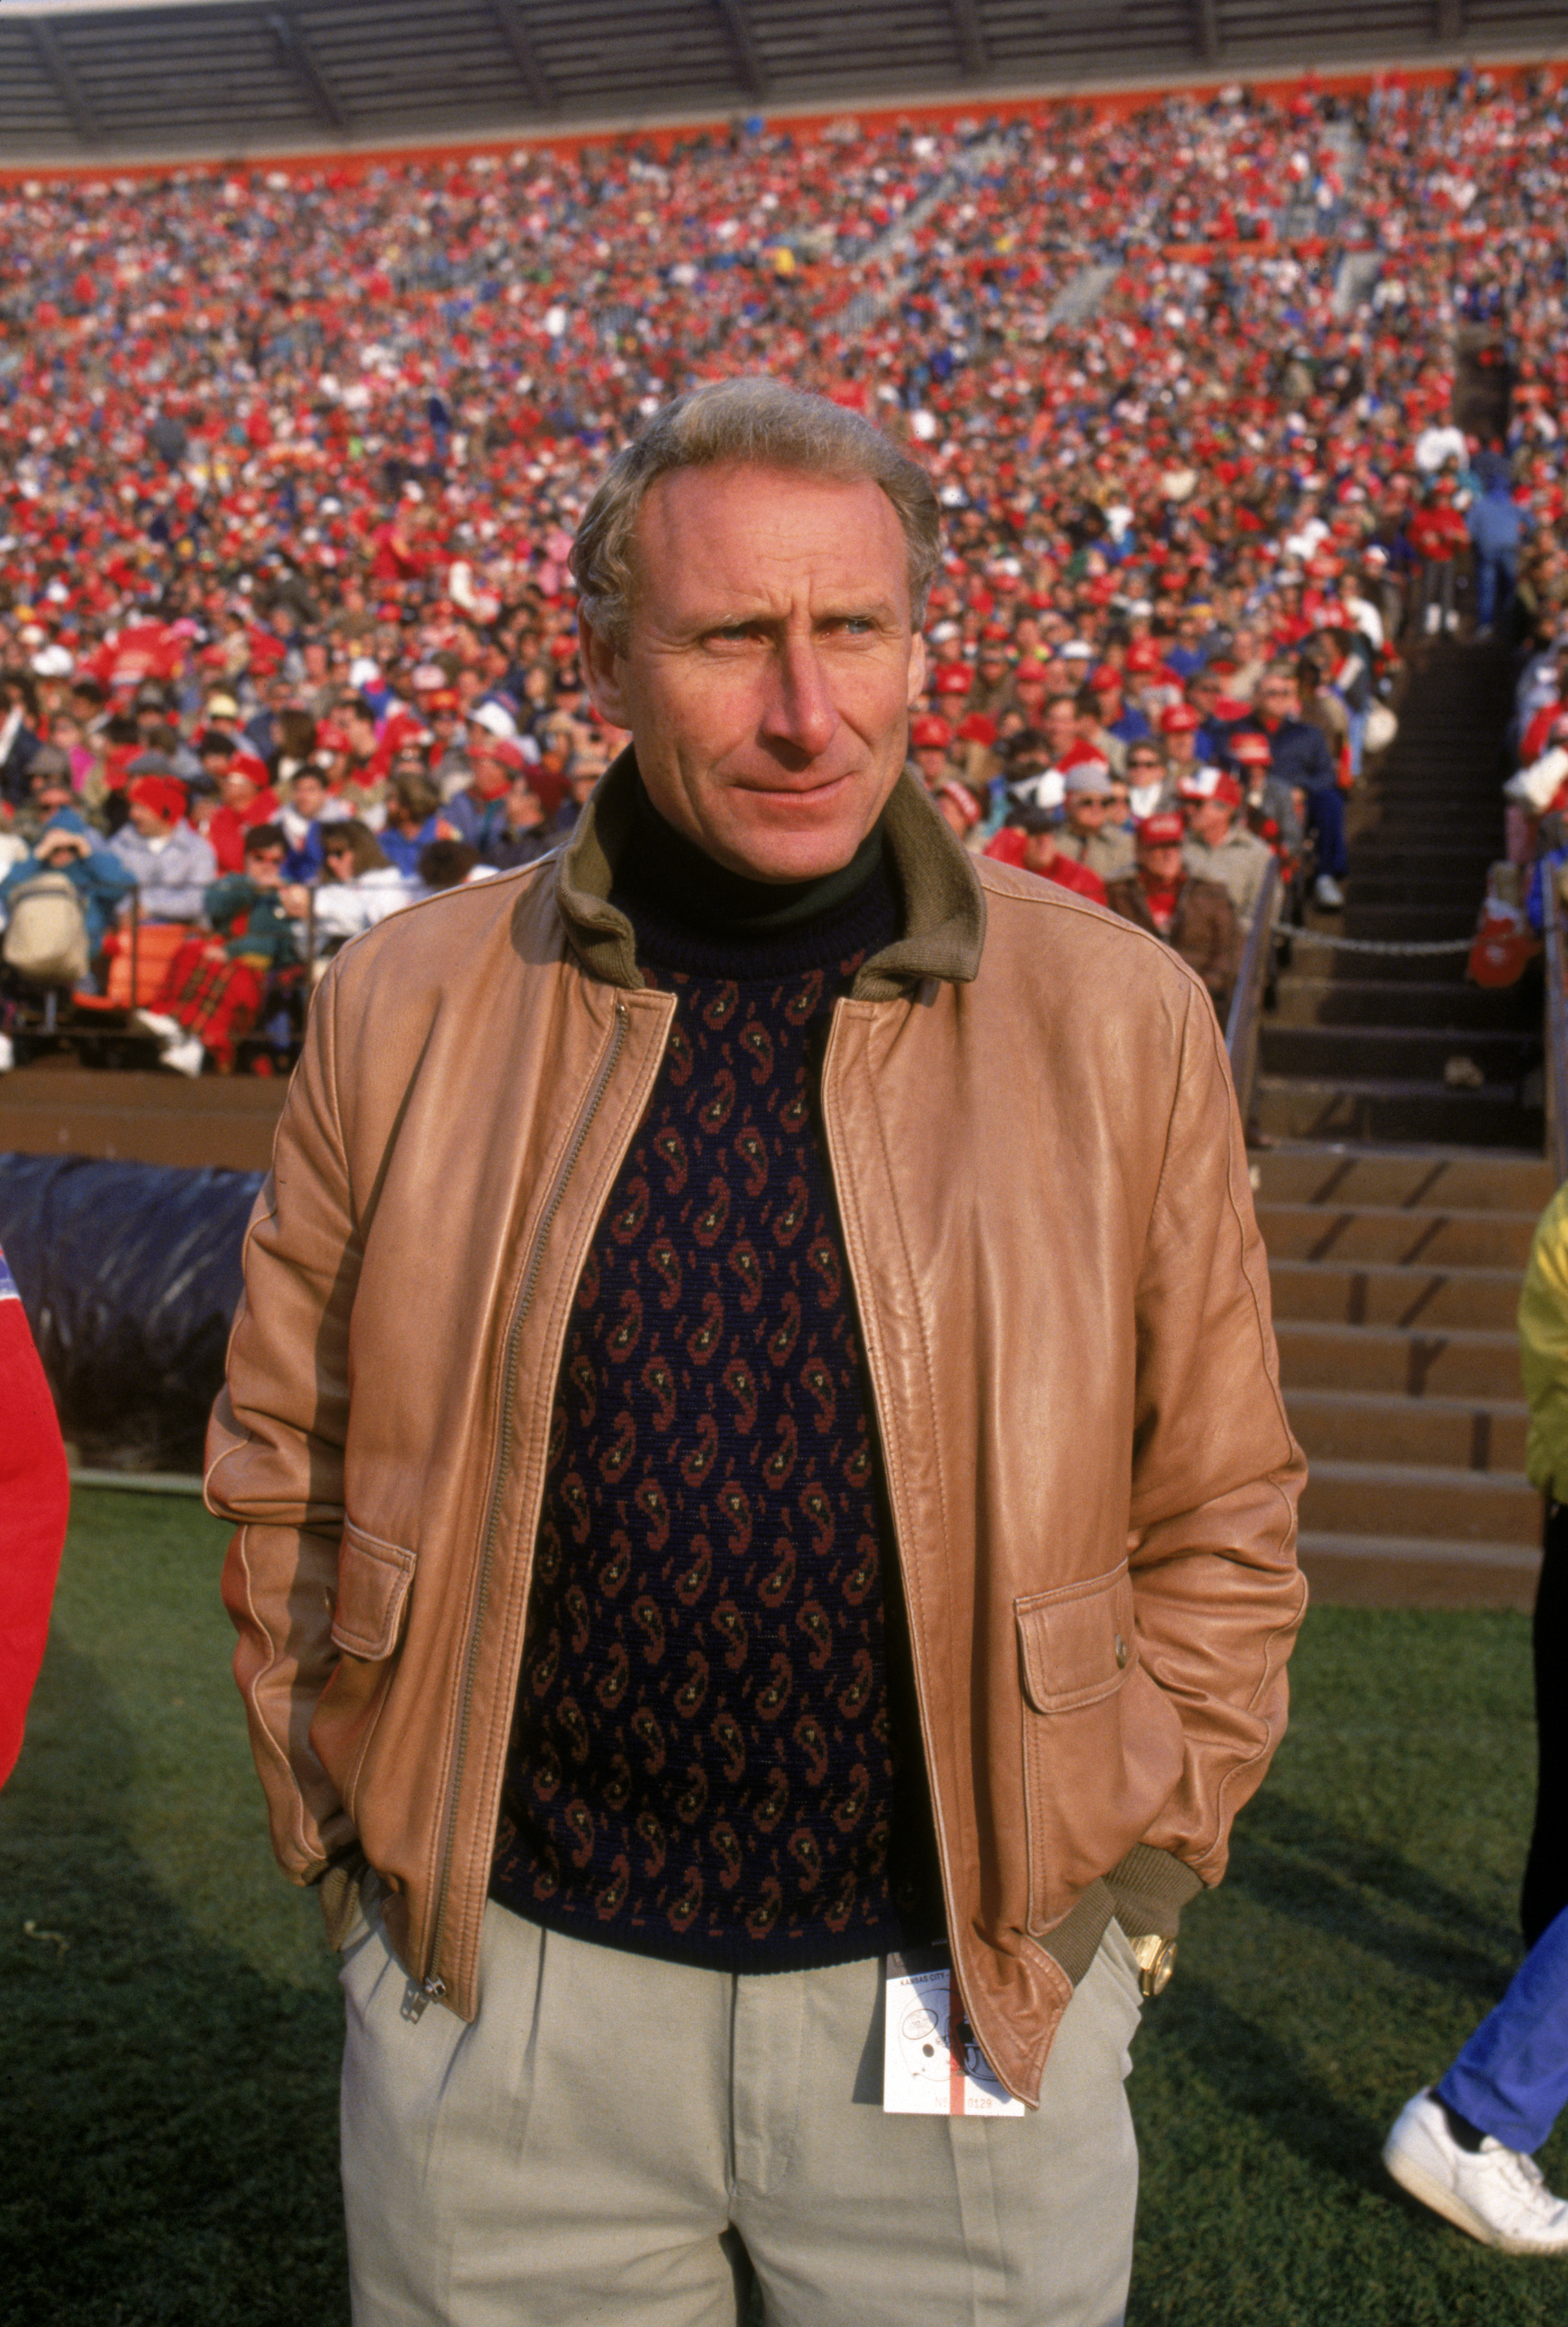 SAN FRANCISCO - DECEMBER 14:  Hall of Famer placekicker for the Kansas City Chiefs, Jan Stenerud, attends a game between the San Francisco 49ers and Kansas City Chiefs at Candlestick Park on December 14, 1991 in San Francisco, California.  The 49ers won 2